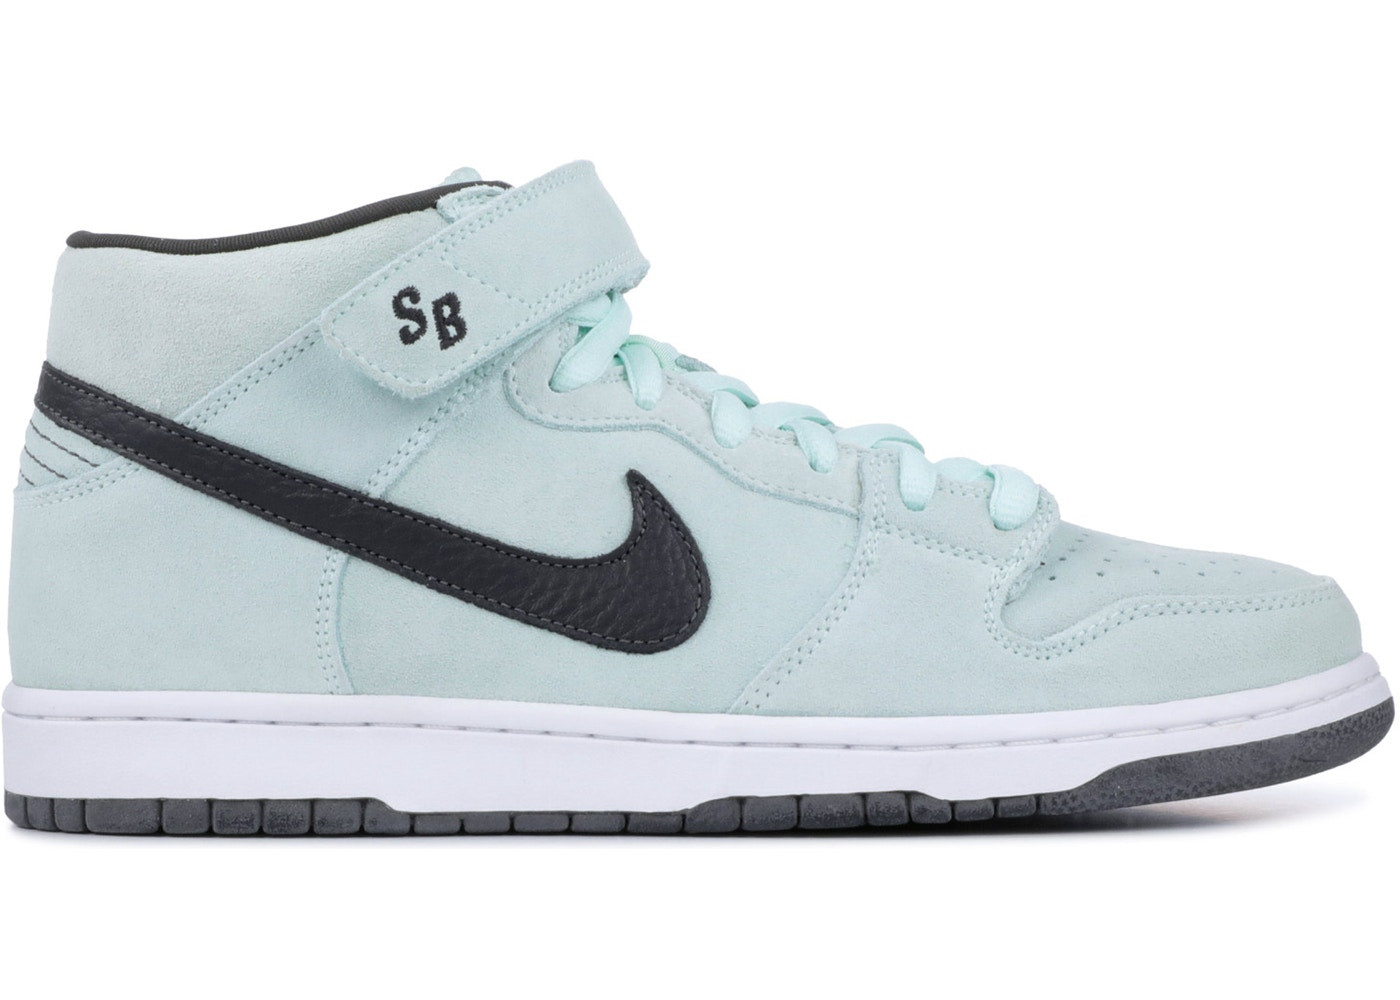 half off f3912 8c11e Sell. or Ask. Size  13. View All Bids. Nike SB Dunk Mid Sea Crystal Ice  Green